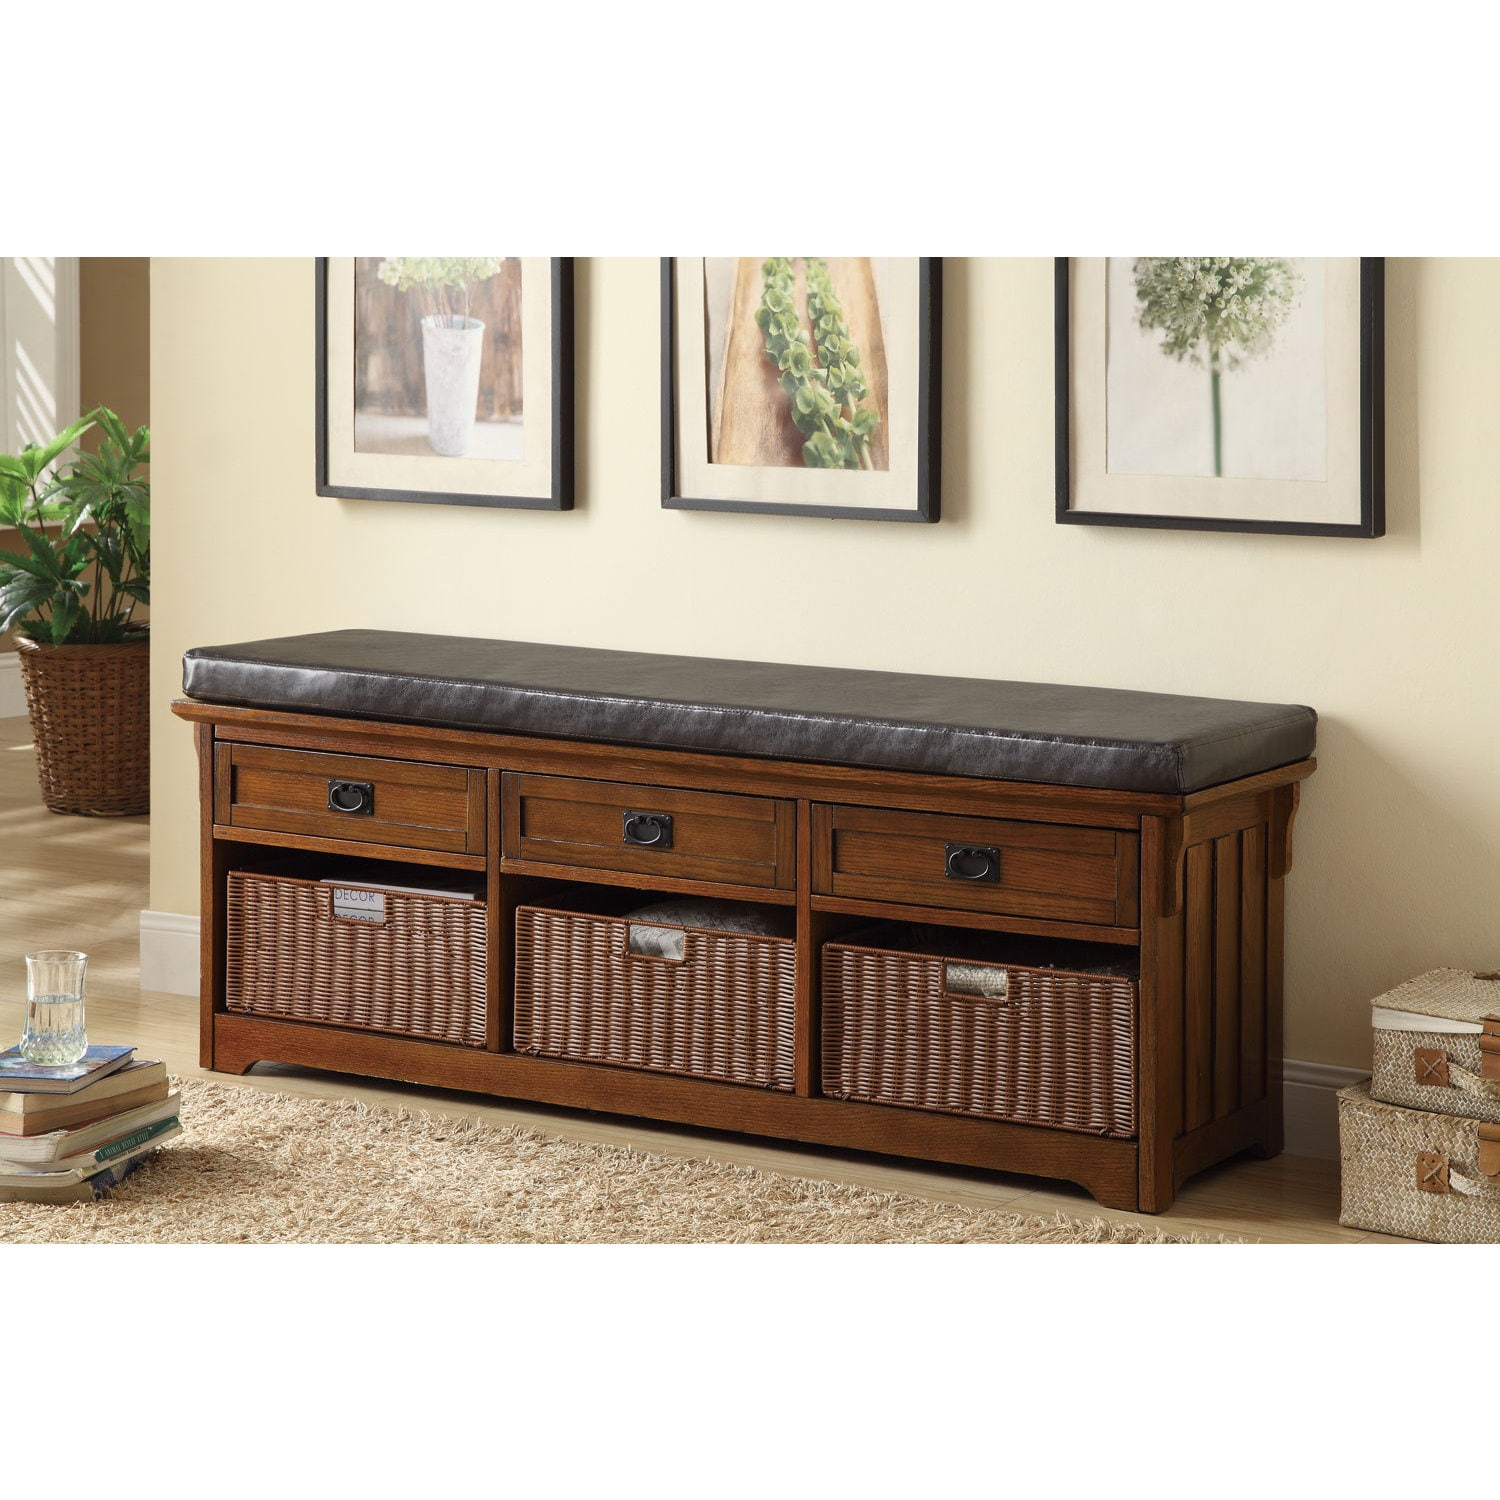 Coaster Furniture Mission style Oak finish wood bedroom entry bench with storage basket and drawers